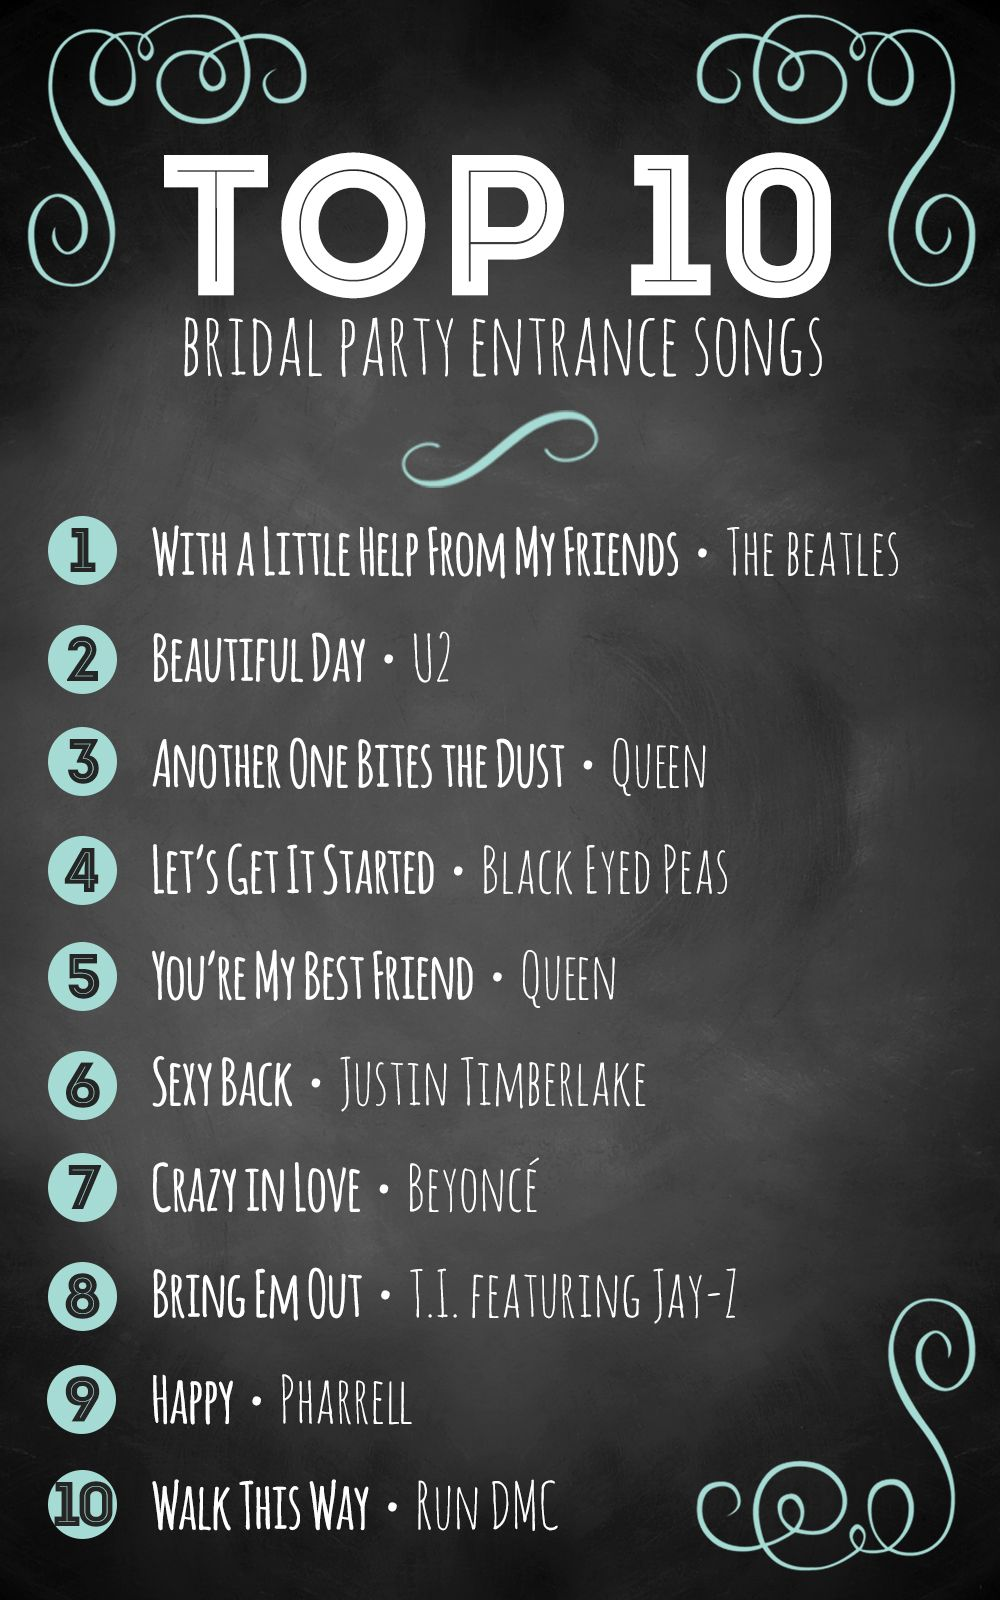 Top 10 bridal party entrance songs Wedding advice Bridal